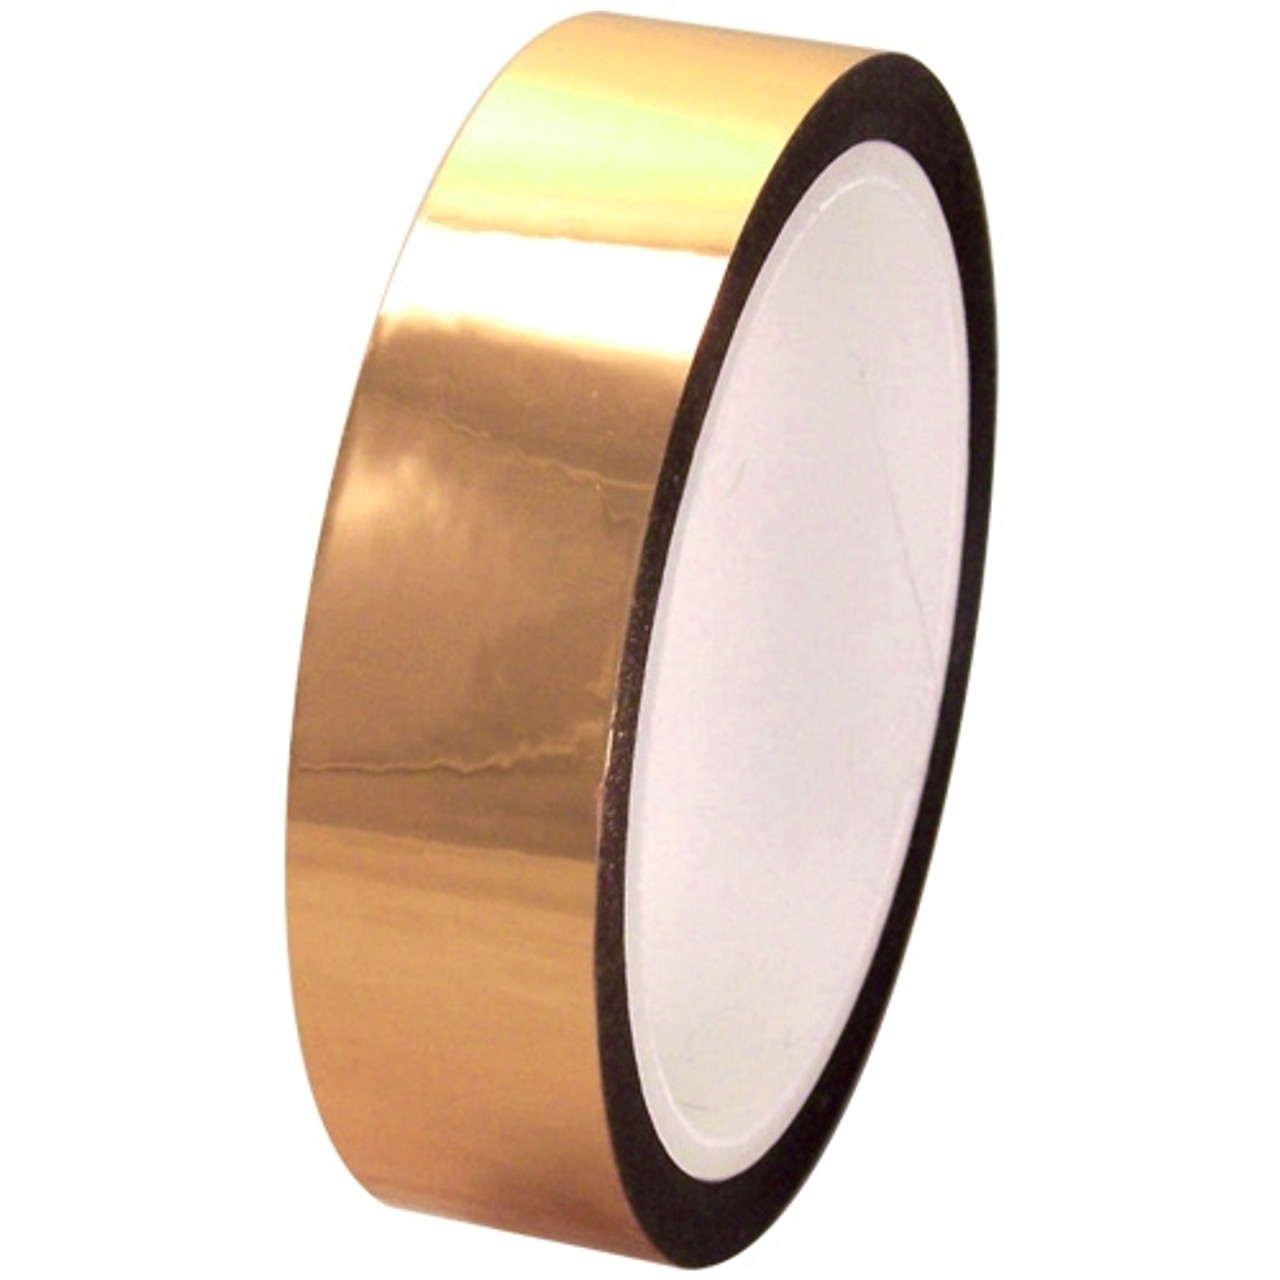 Gold Sheen Decorative Tape 1""